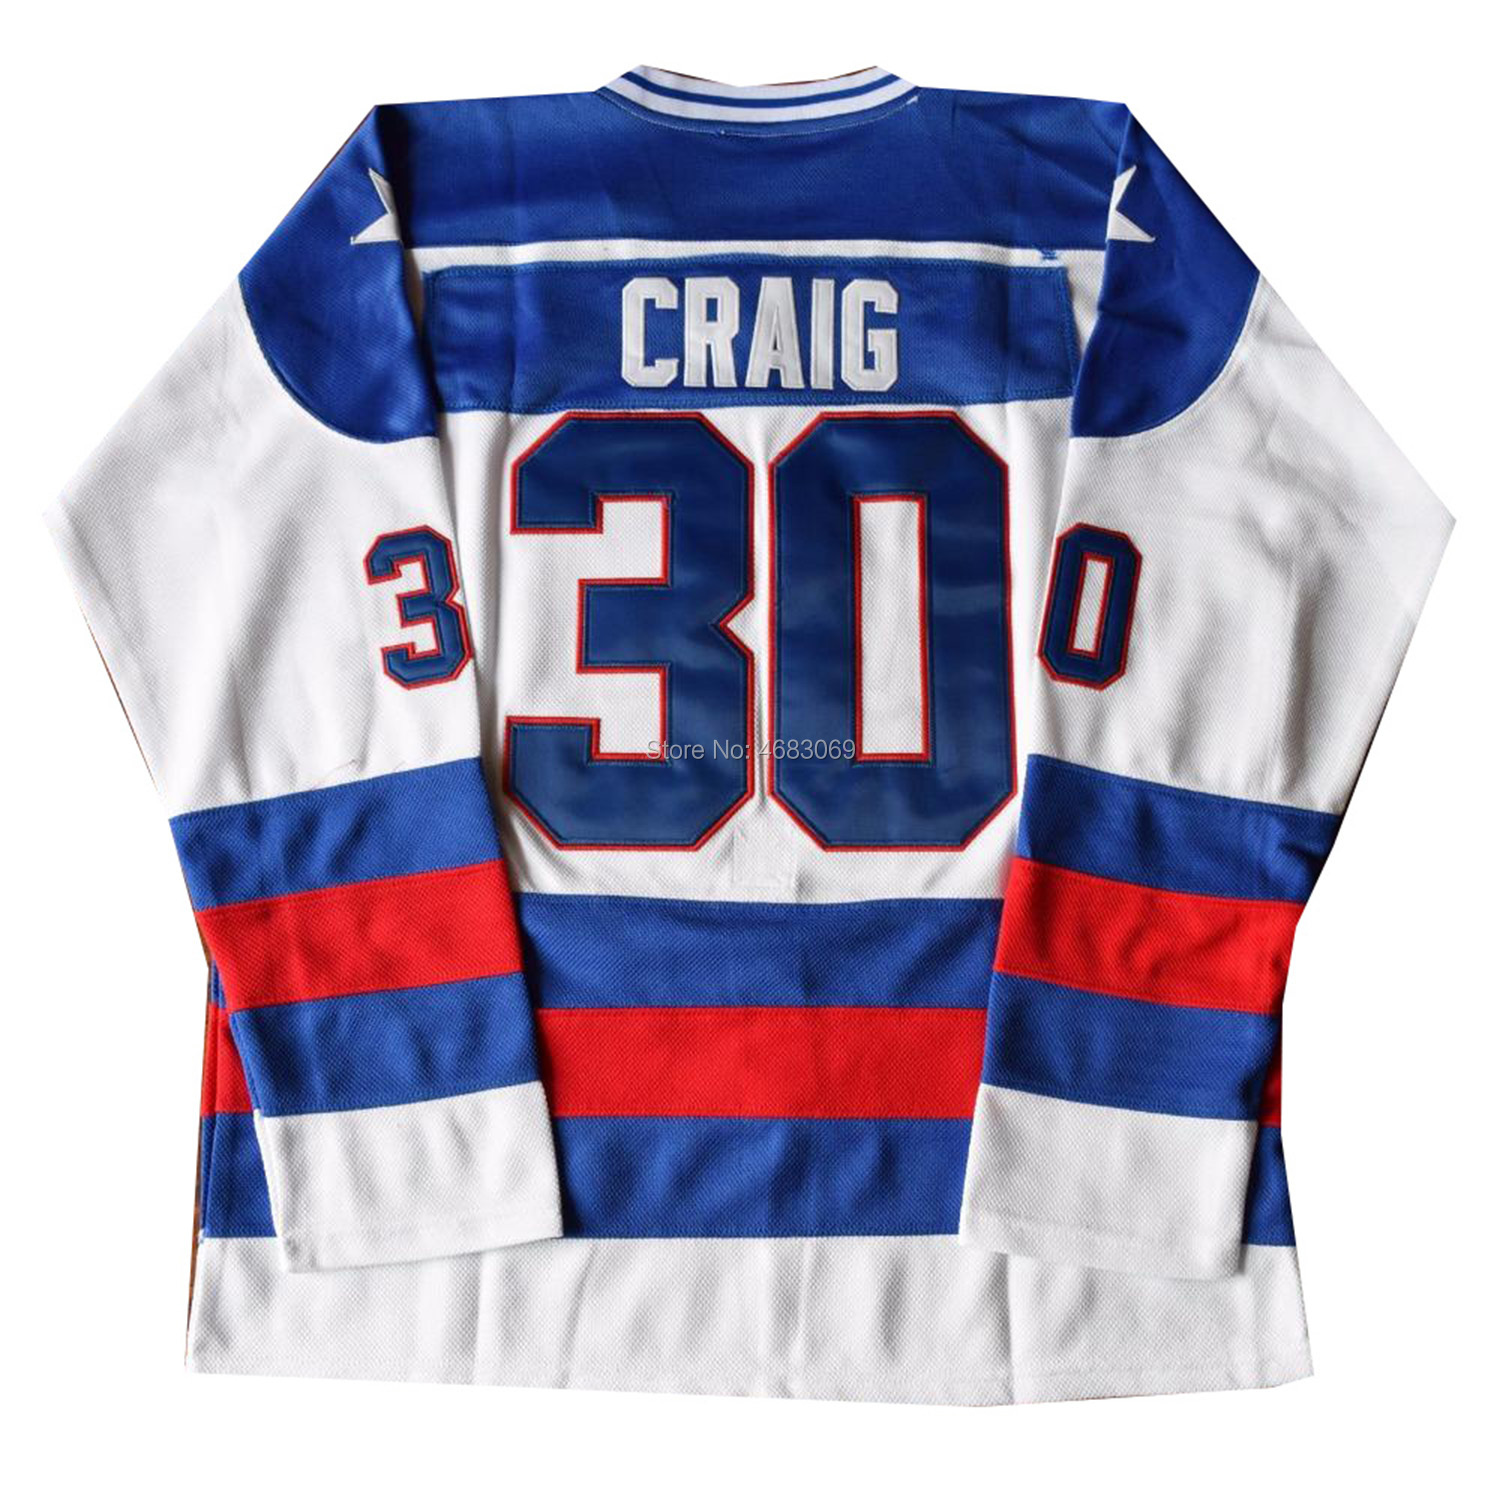 Men USA Jim Craig #30 Ice Hockey Jersey Blue White Color S M L XL XXL XXXL 1980 Miracle On Ice Cosplay Costume Movie Jersey